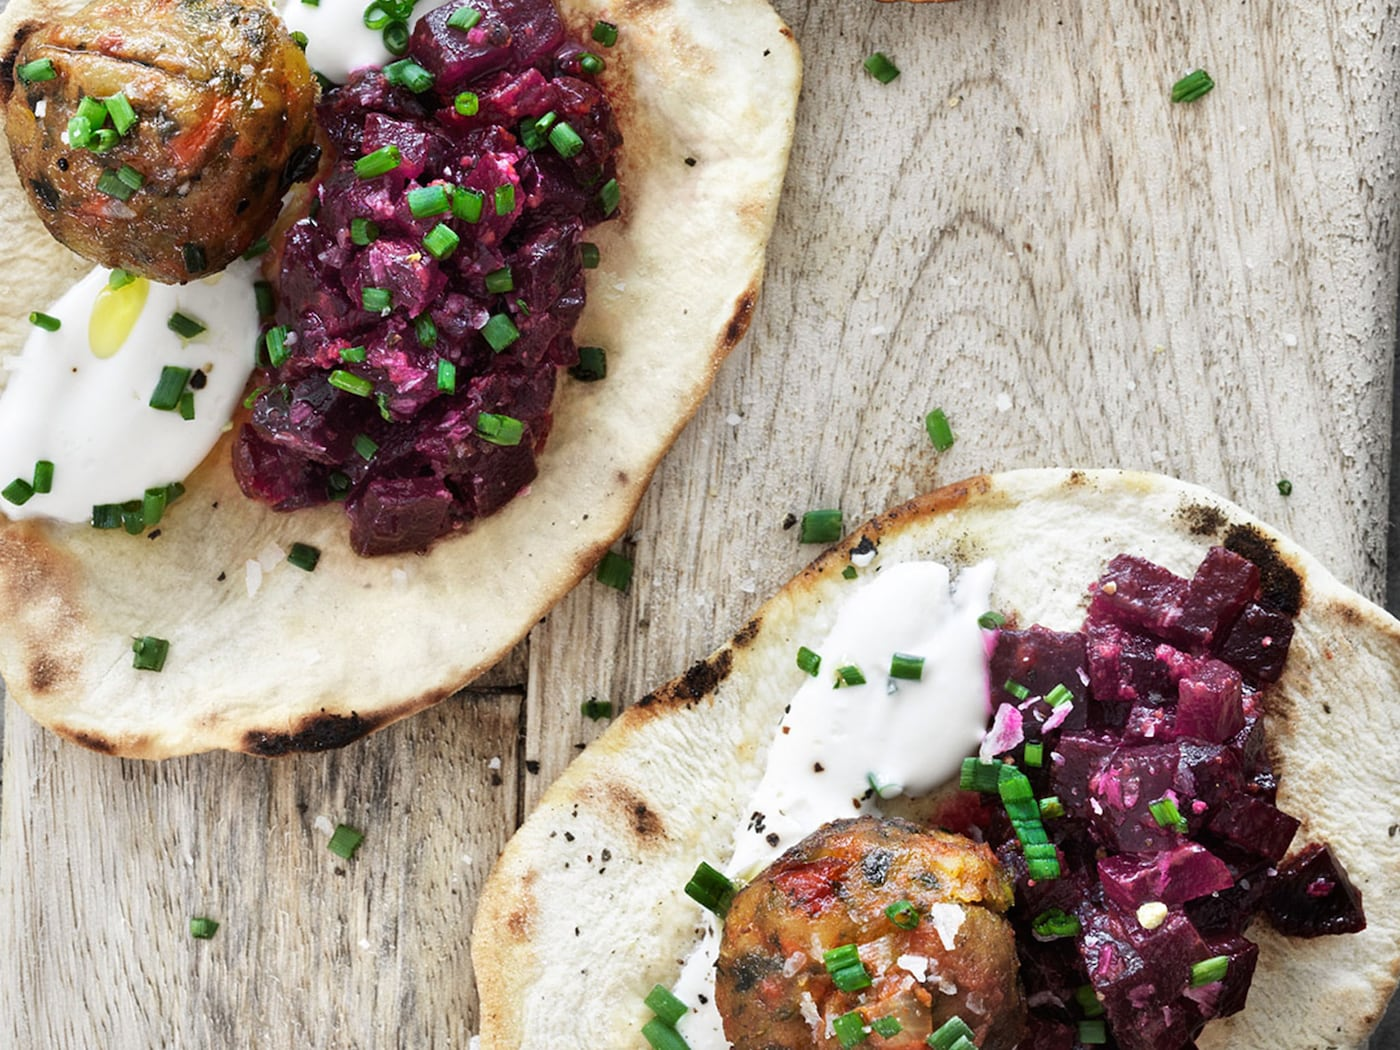 Roasted beet relish and veggie balls on naan bread garnished with yoghurt and chopped chives, served on a wooden board, seen from above.